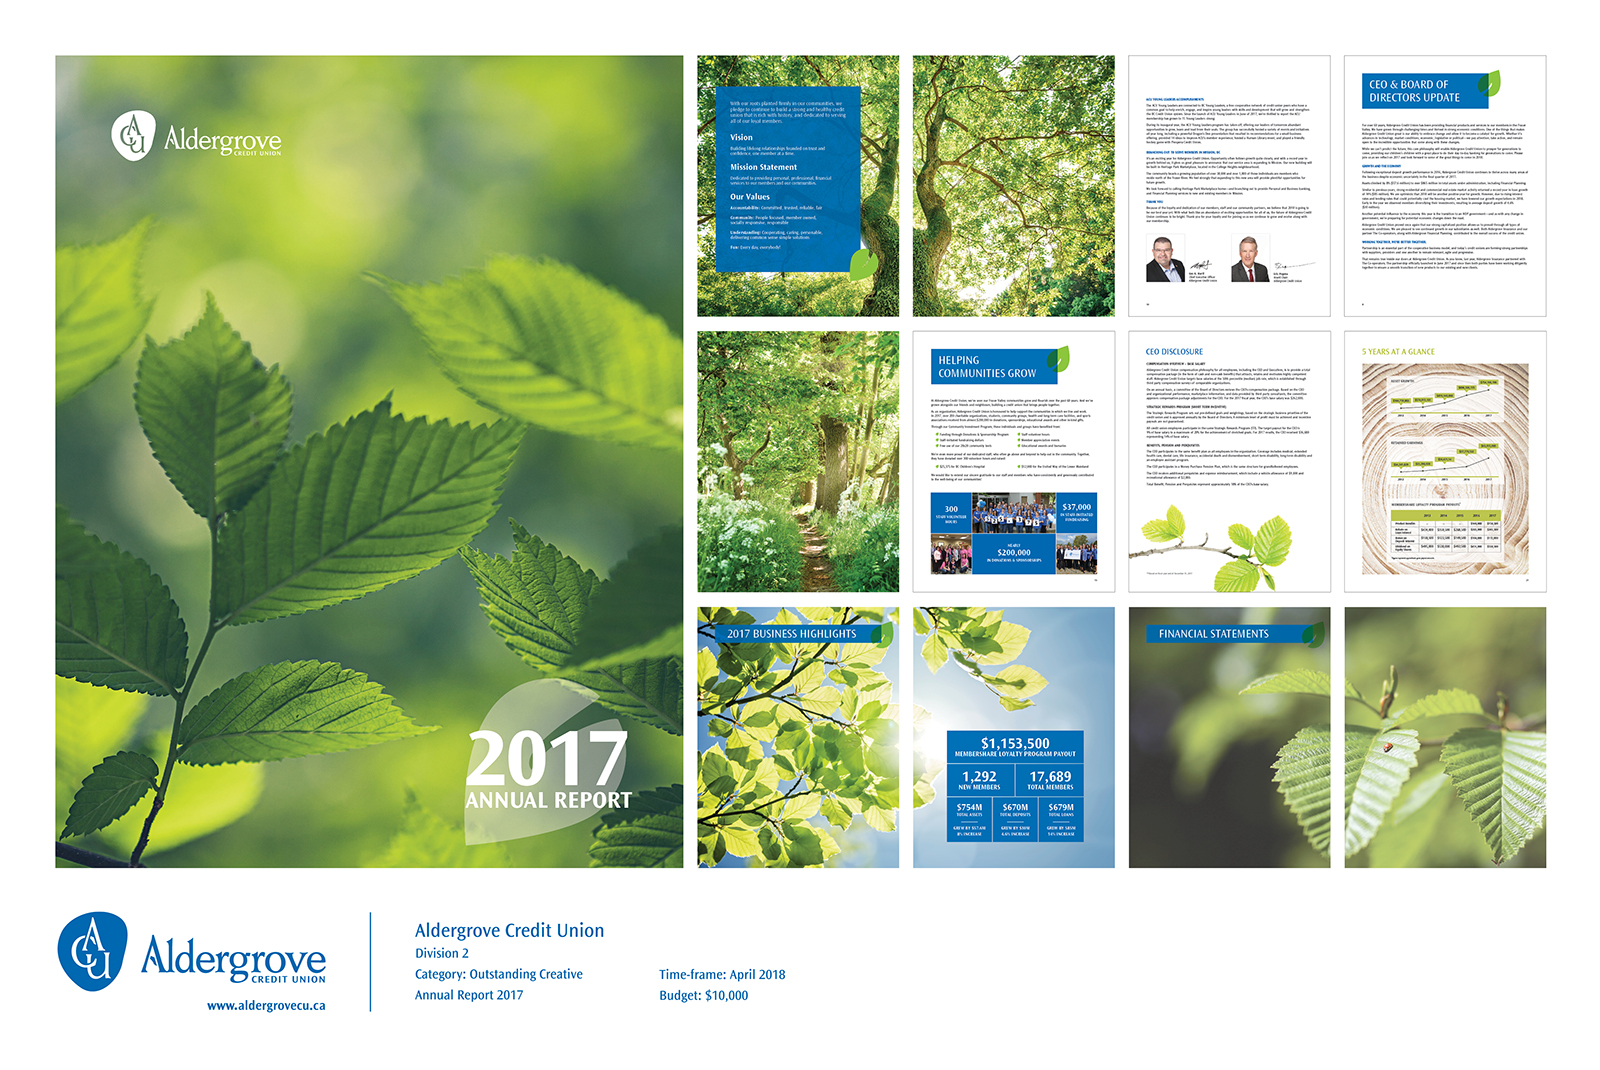 Front cover of annual report with a branch of a tree with vibrant green leaves.